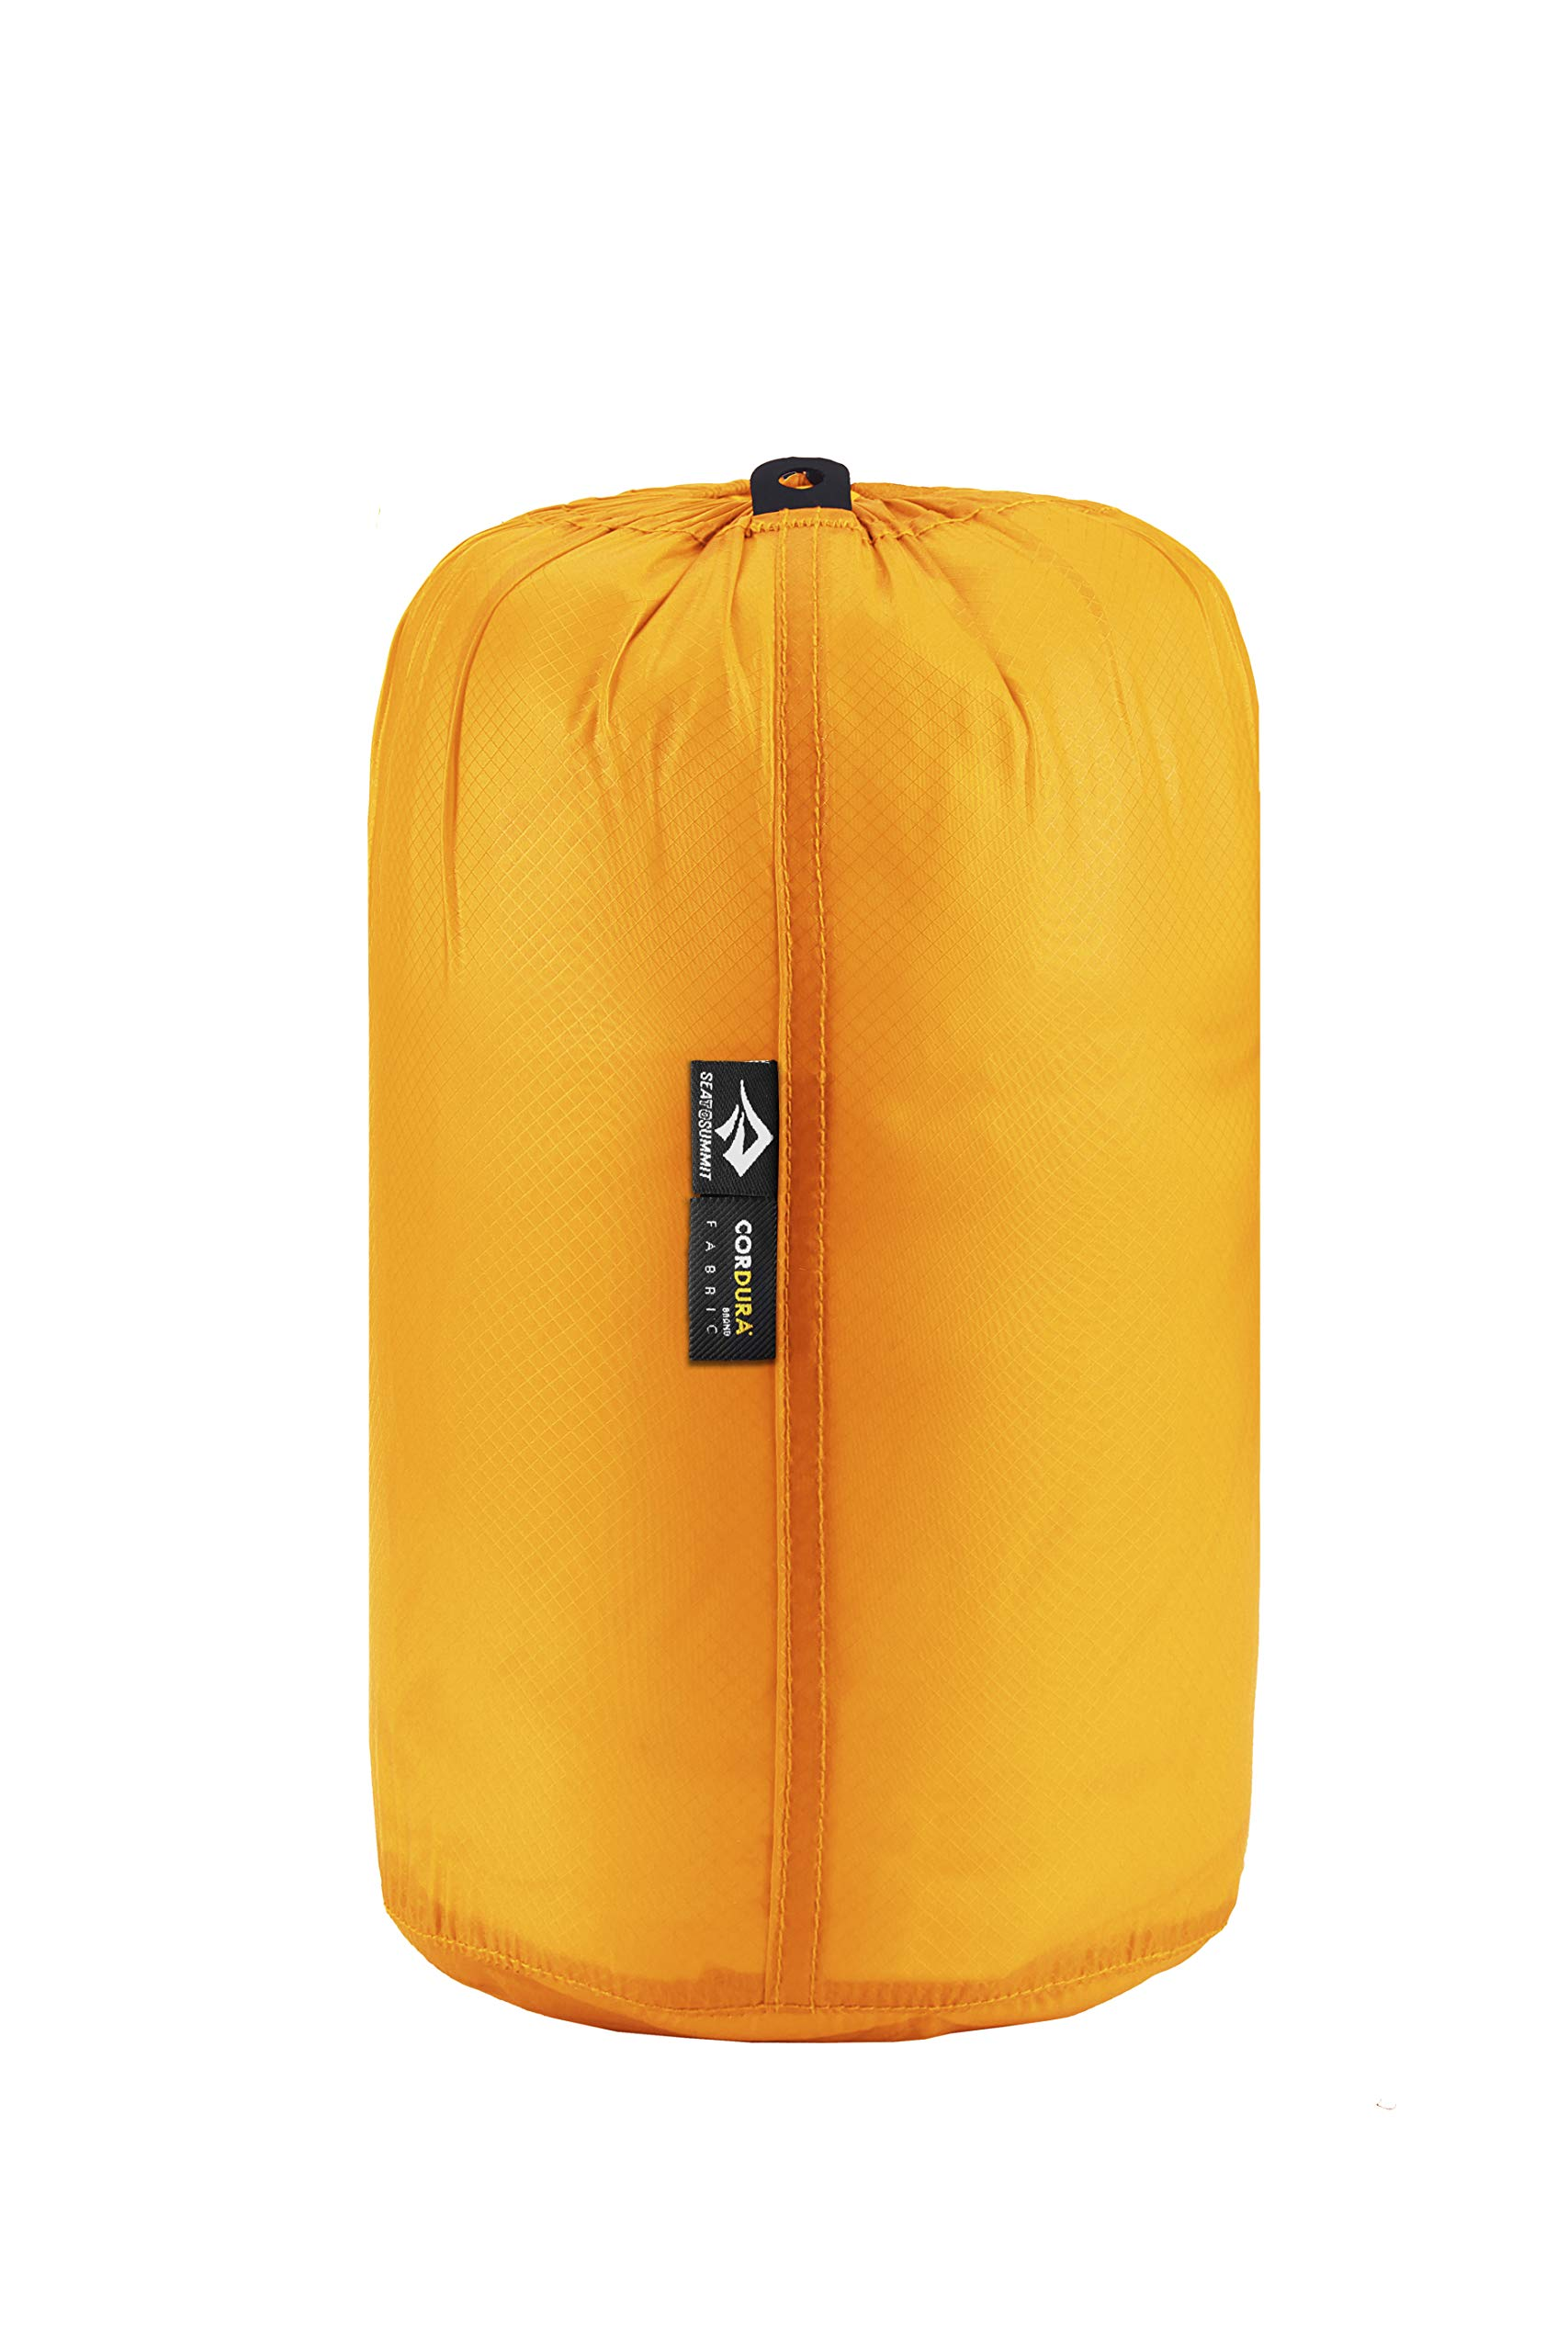 Sea to Summit Ultra-SIL Stuff Sack - S - 6.5 Liter (Gold) by Sea to Summit